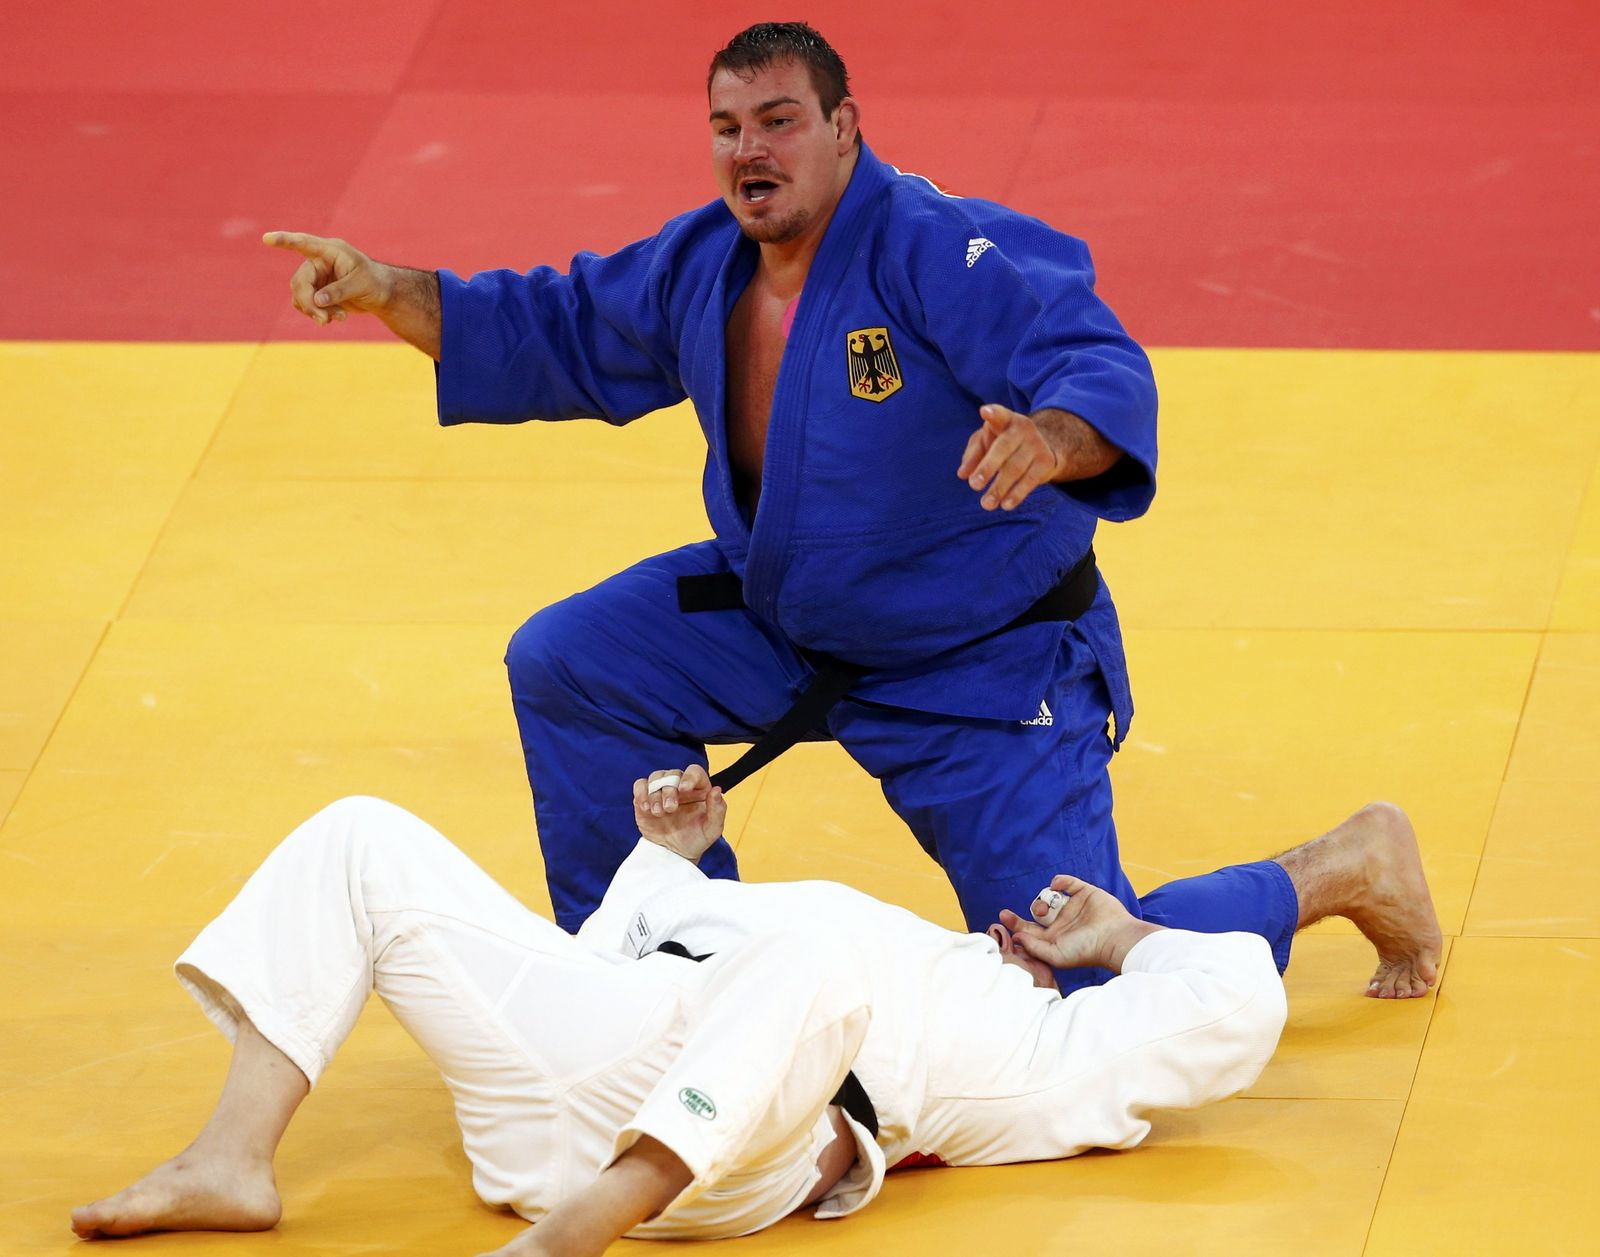 OLY-JUDO-JUM101-ROUNDS-DAY7/